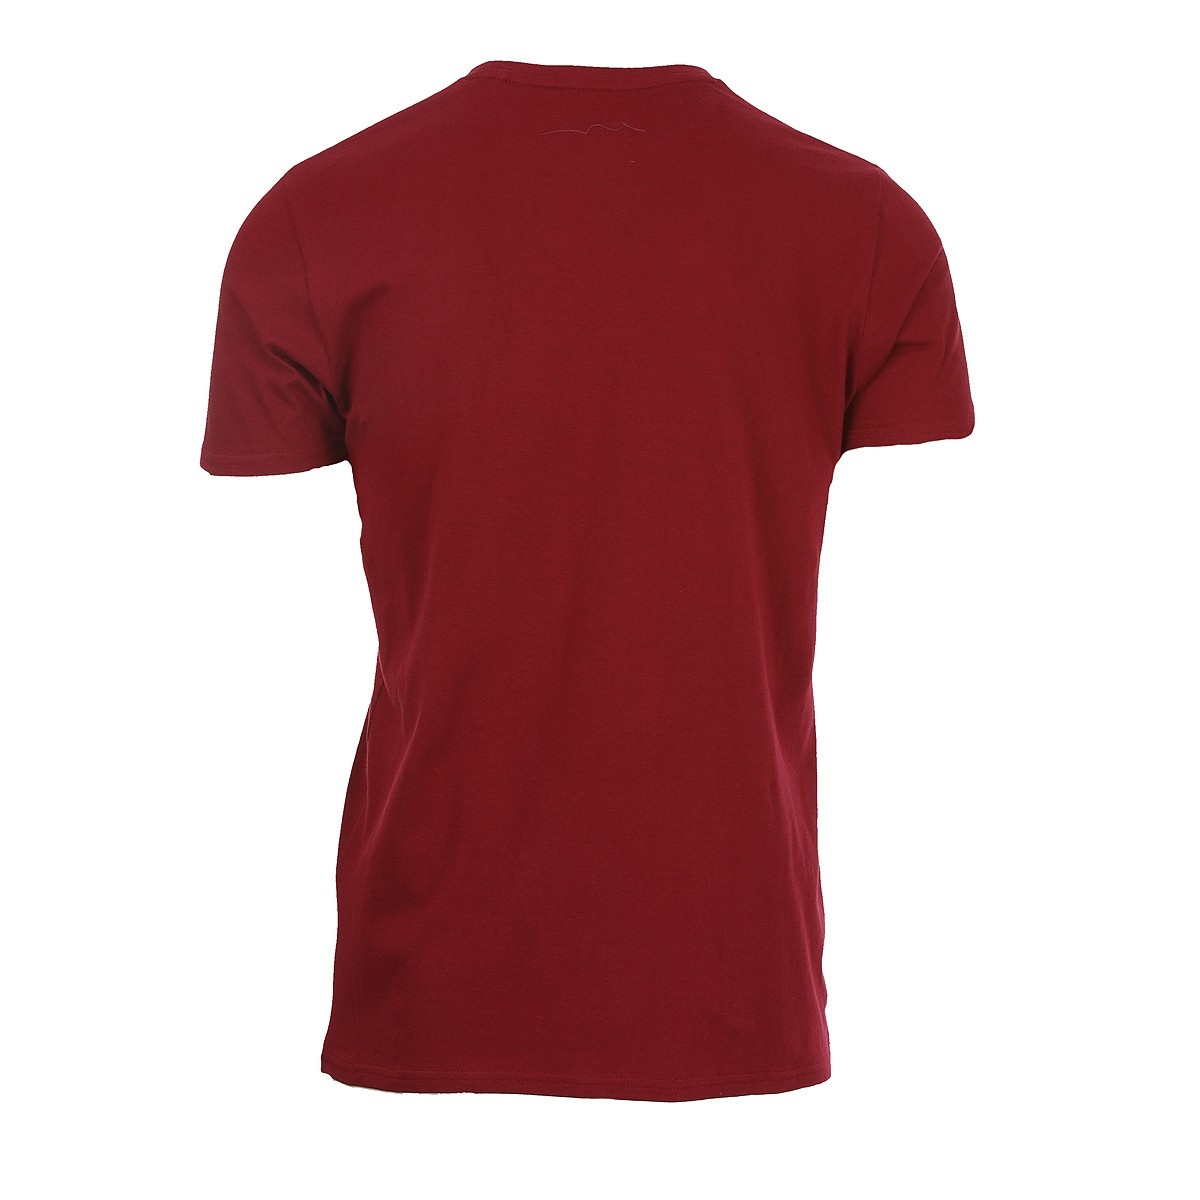 T-shirt manches courtes homme rouge TEDDY SMITH